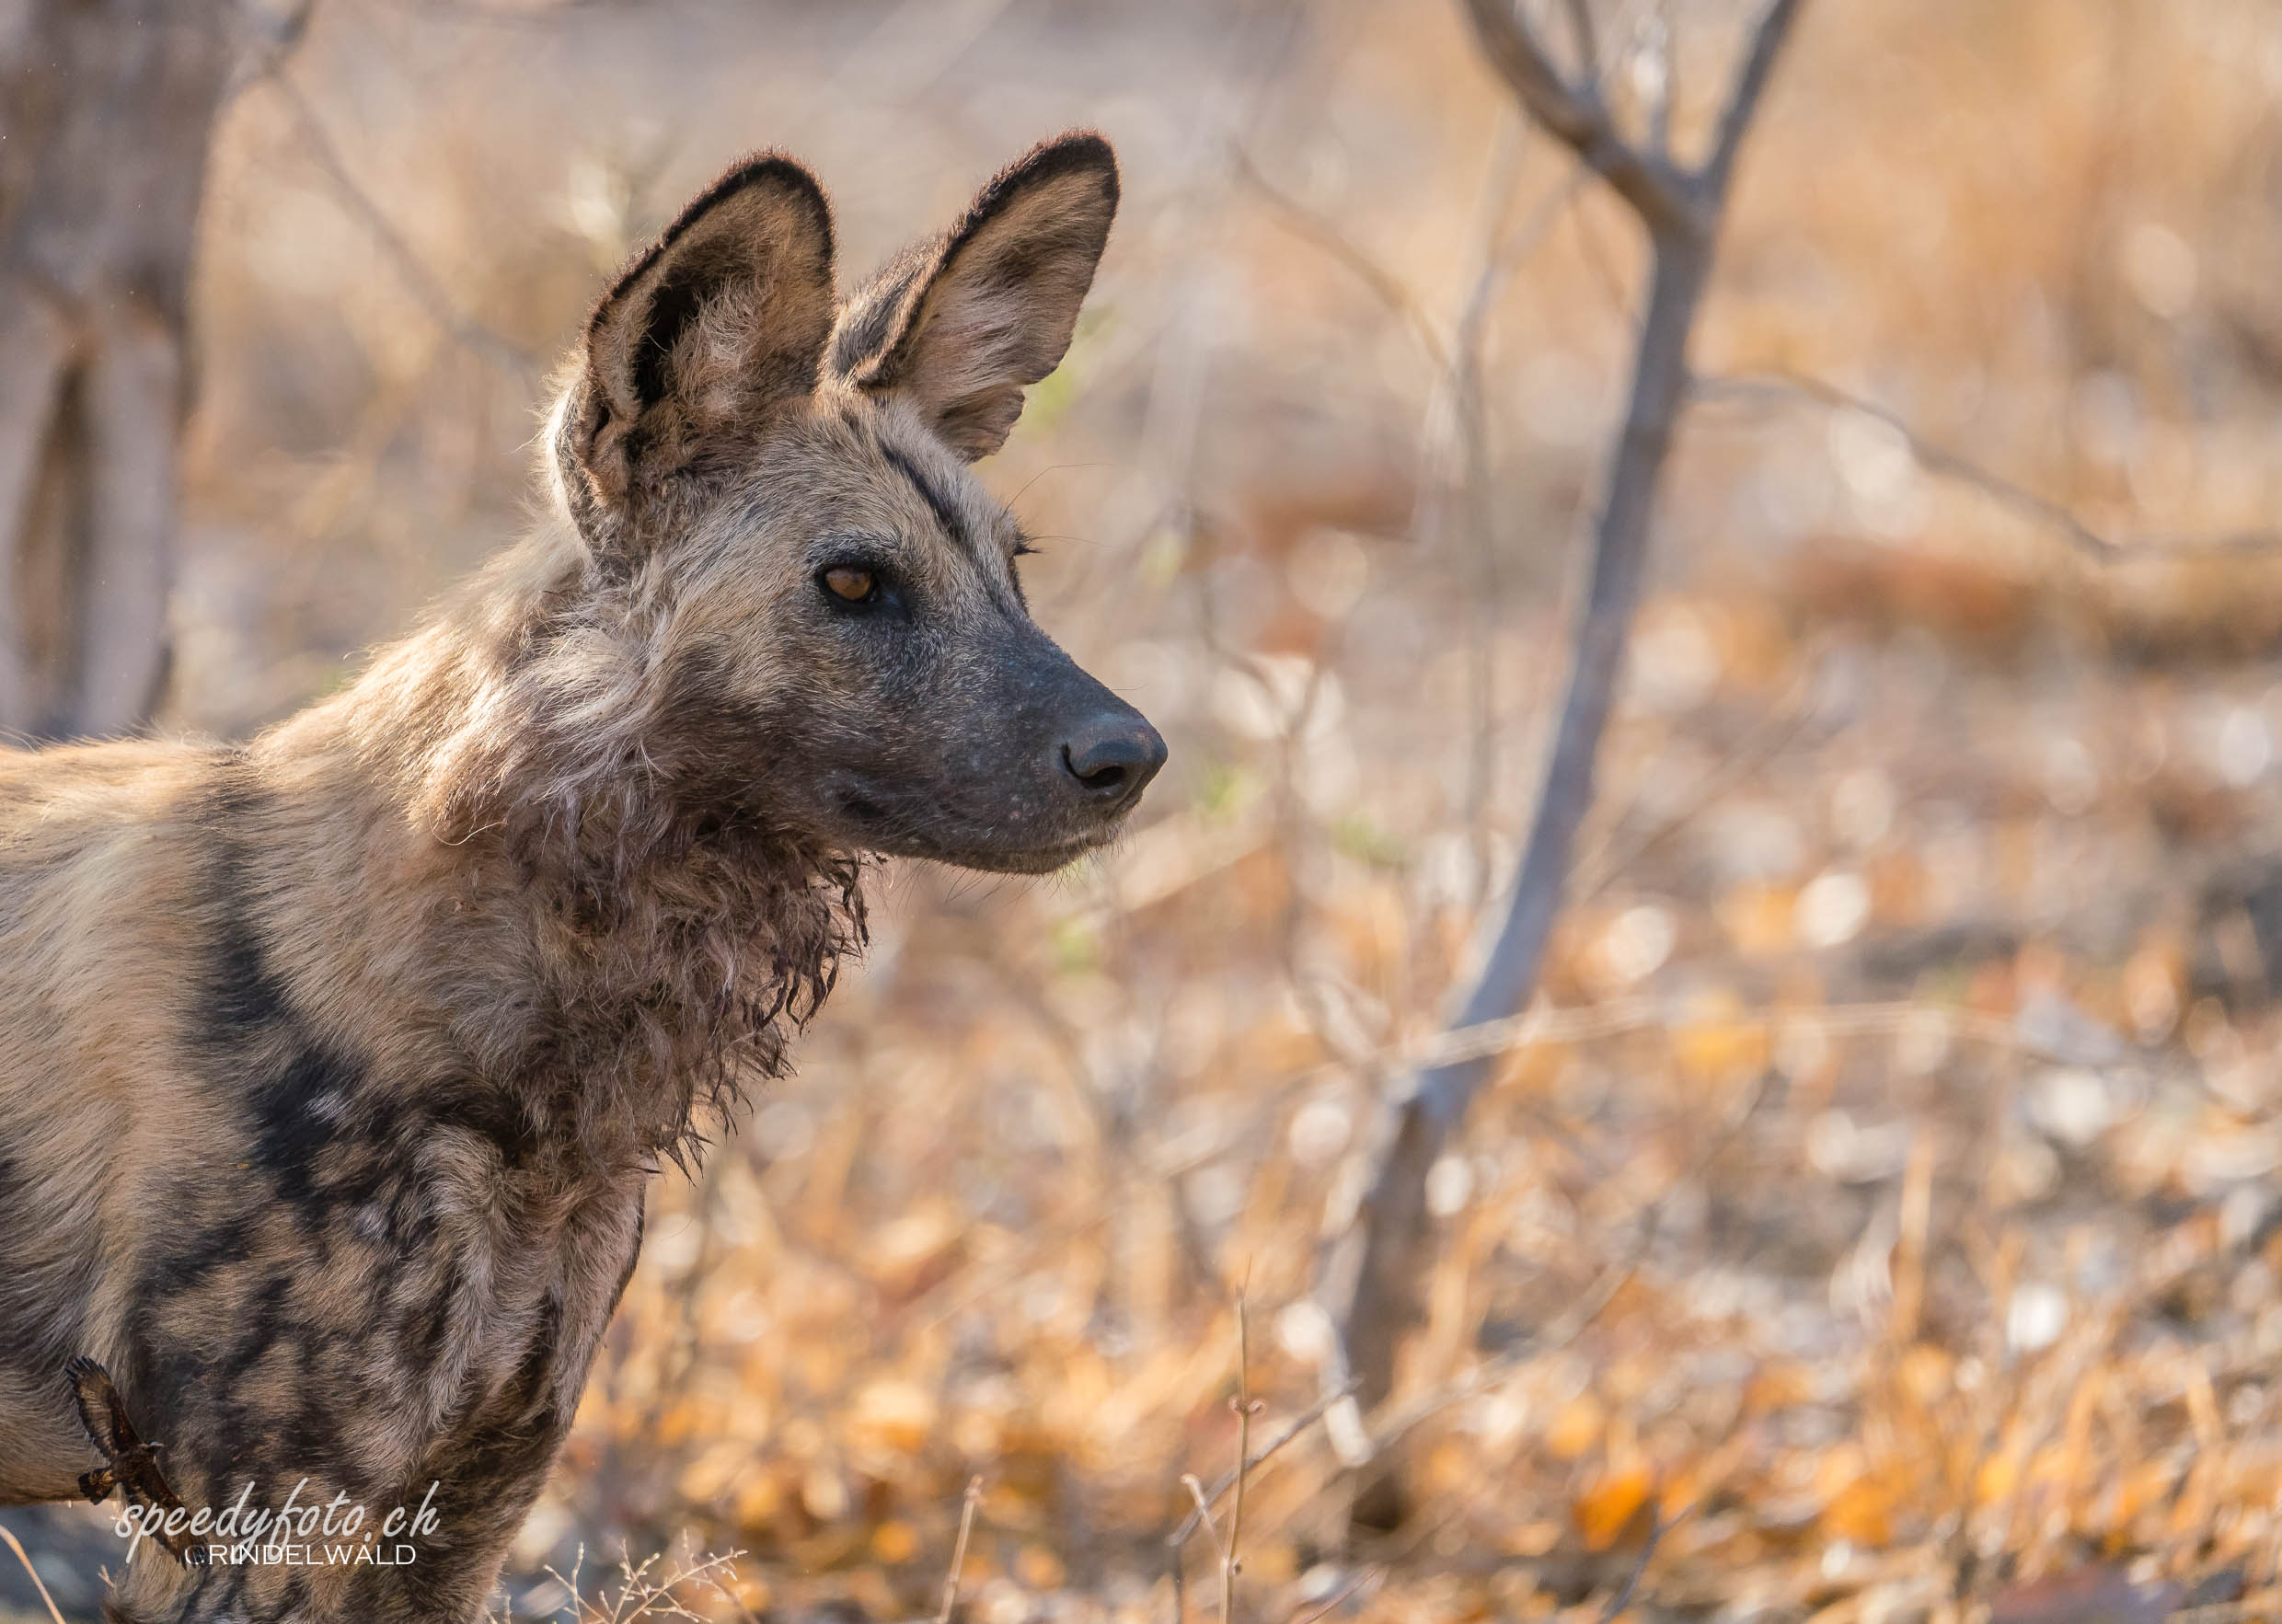 The Adult Wild Dog